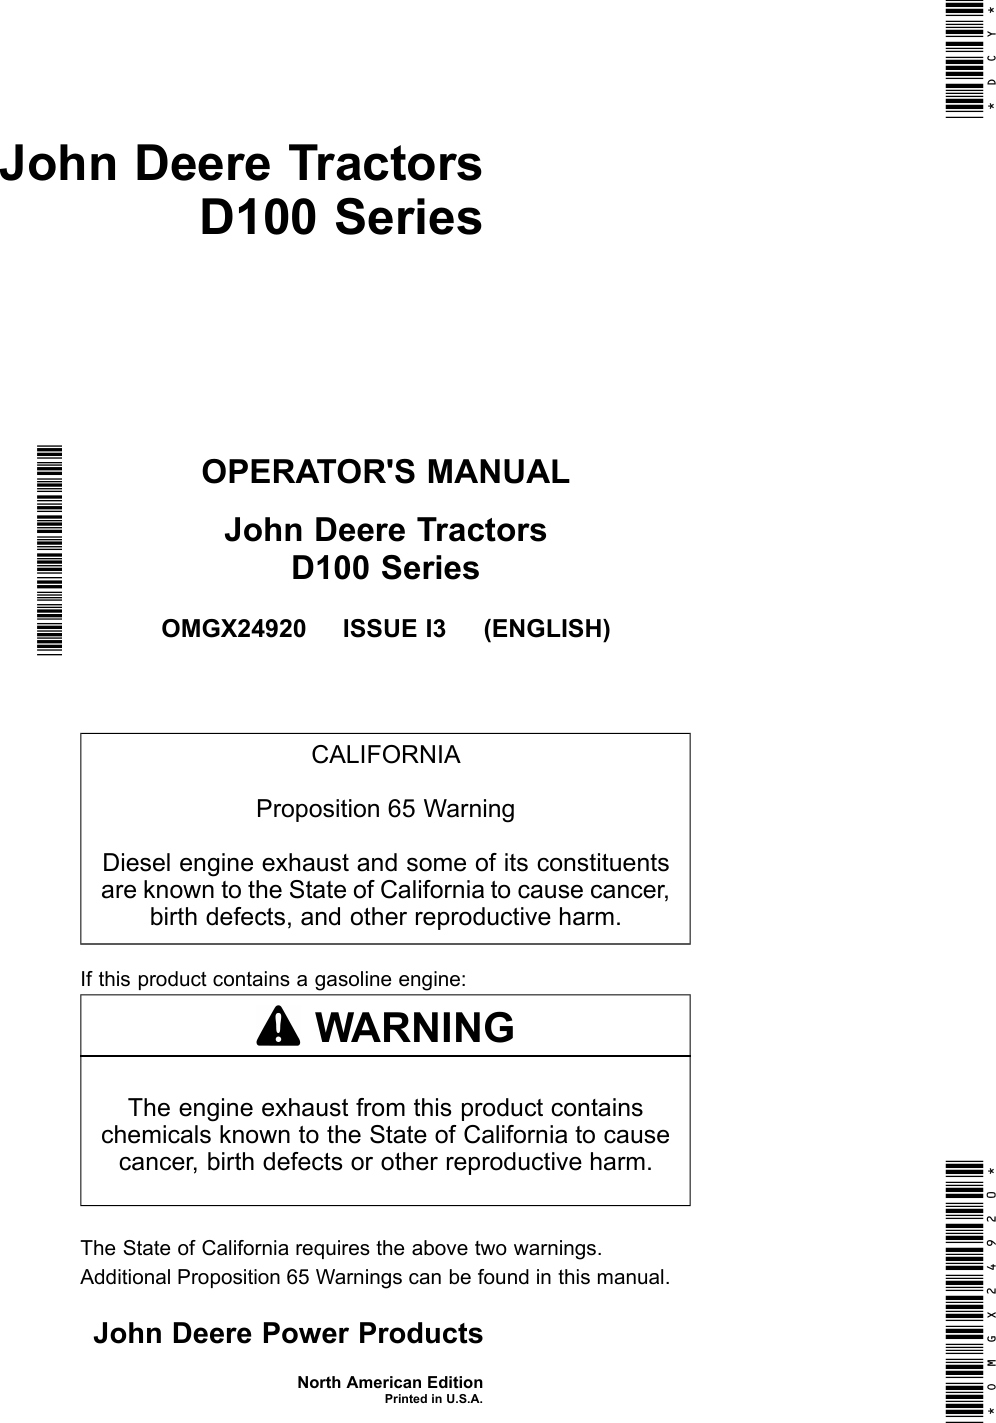 john deere products and services lawn mower d100 users manual